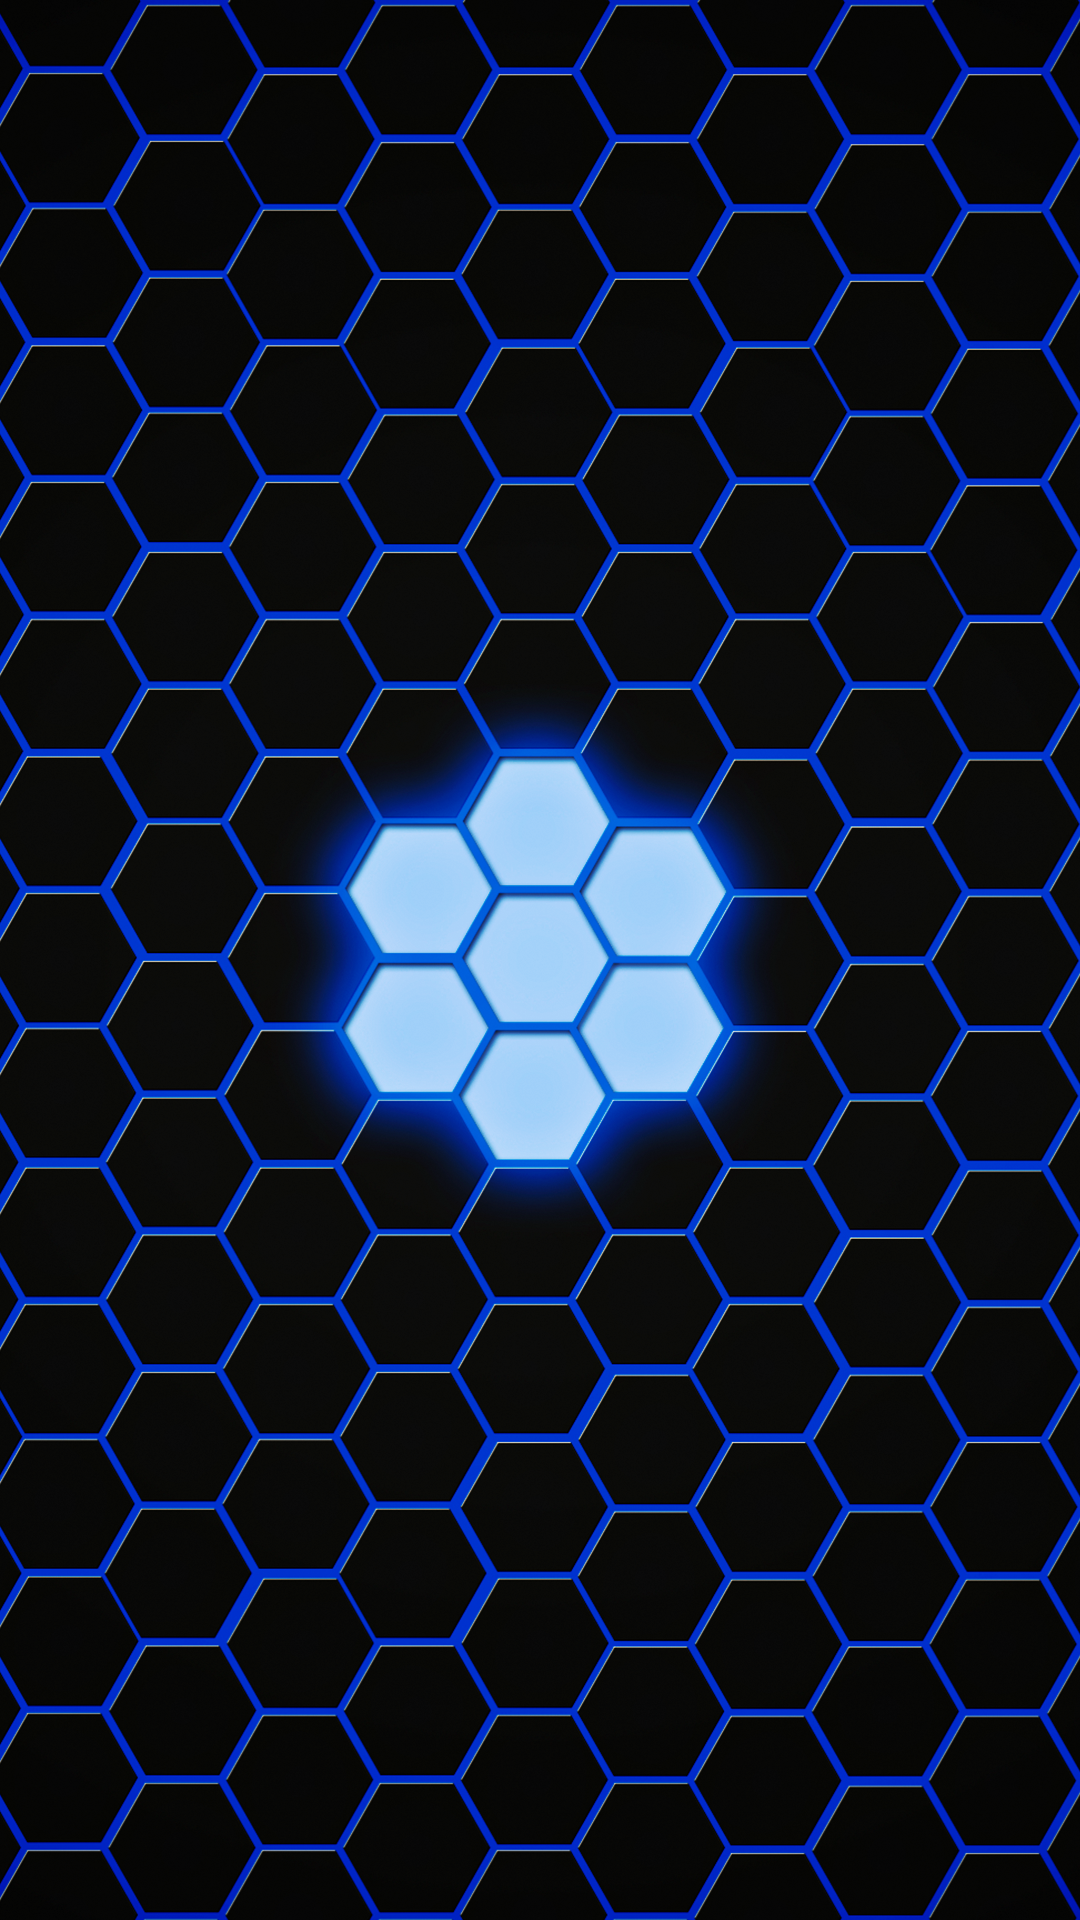 Ultra Hd Blue Hexagon Wallpaper For Your Mobile Phone 0329